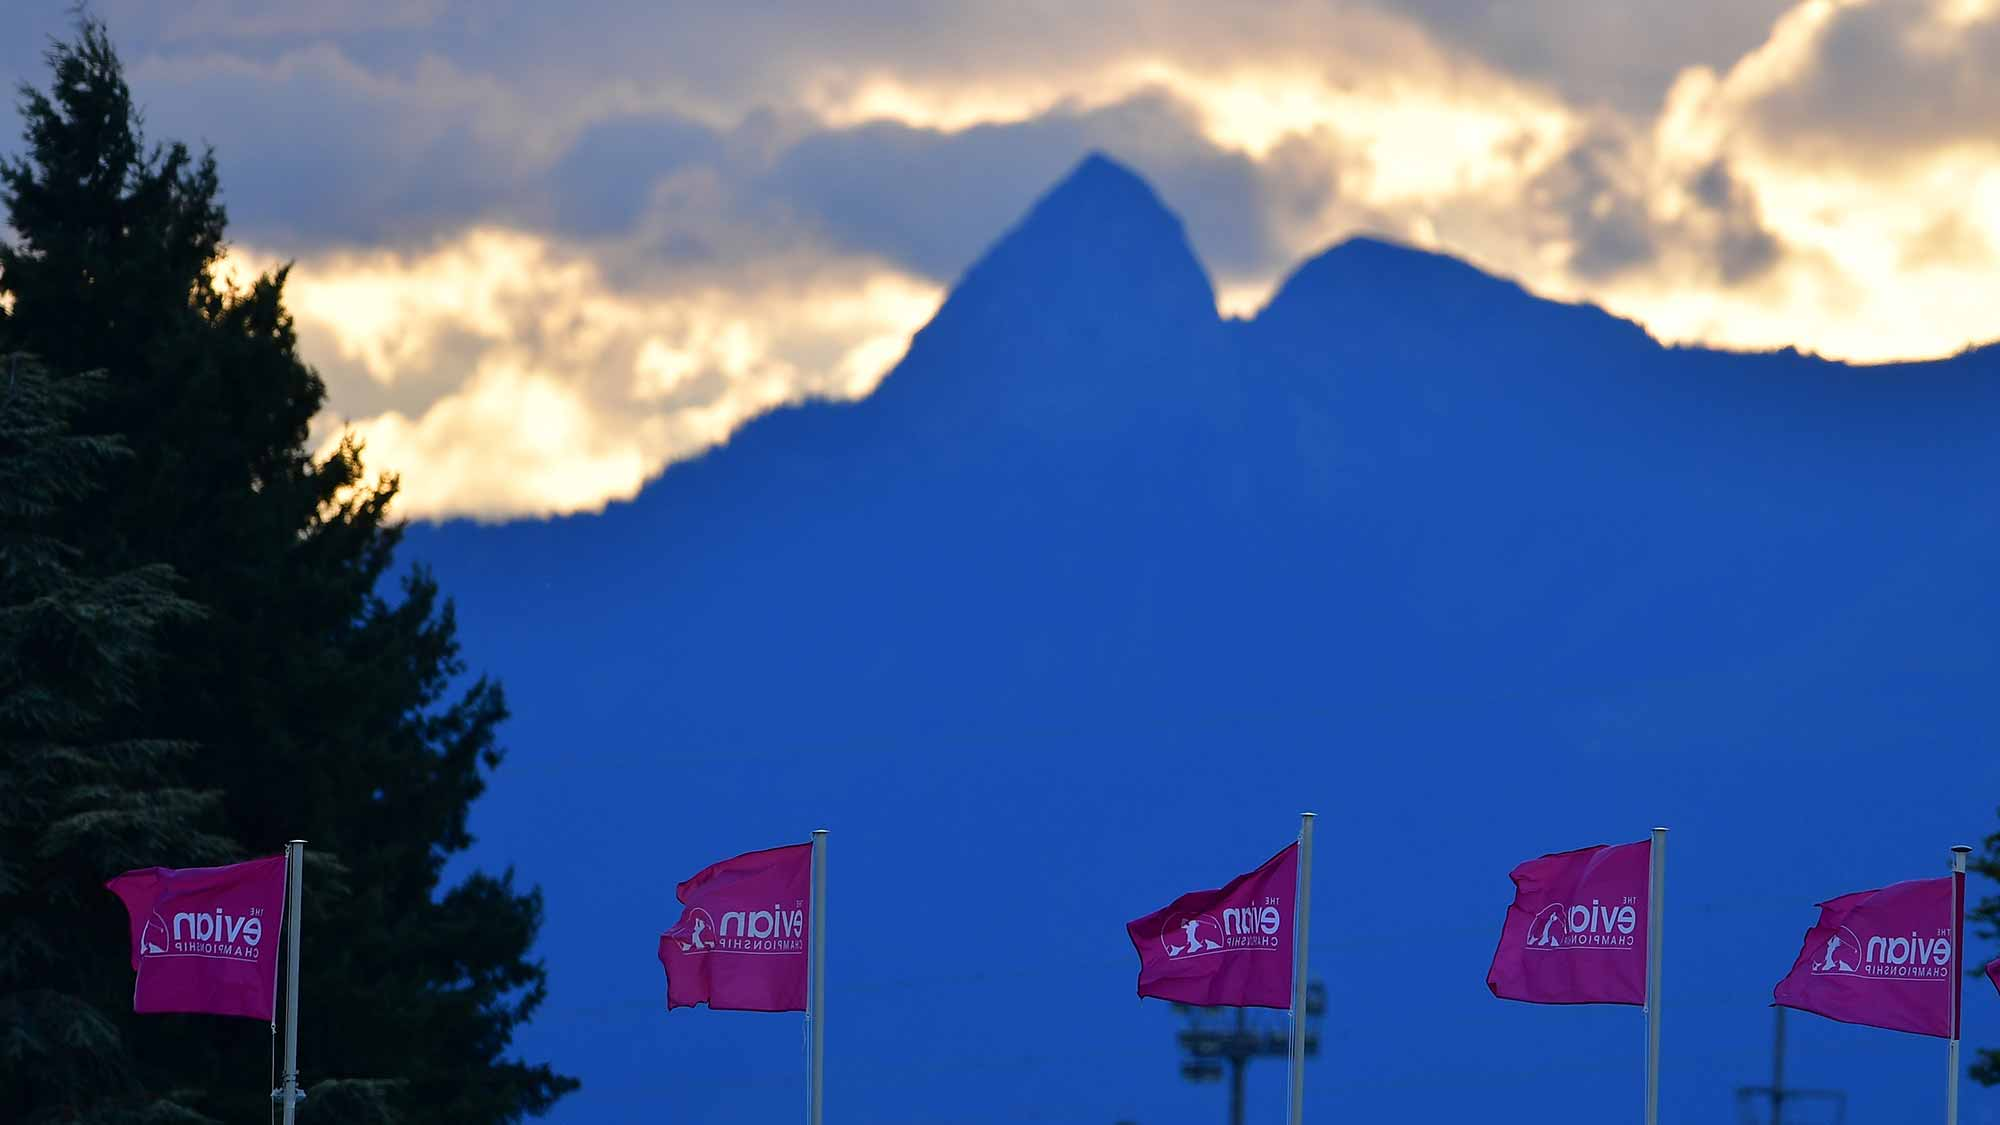 The sun rises above the Alps before the first round of the Evian Golf Club in Evian-les-Bains, France.